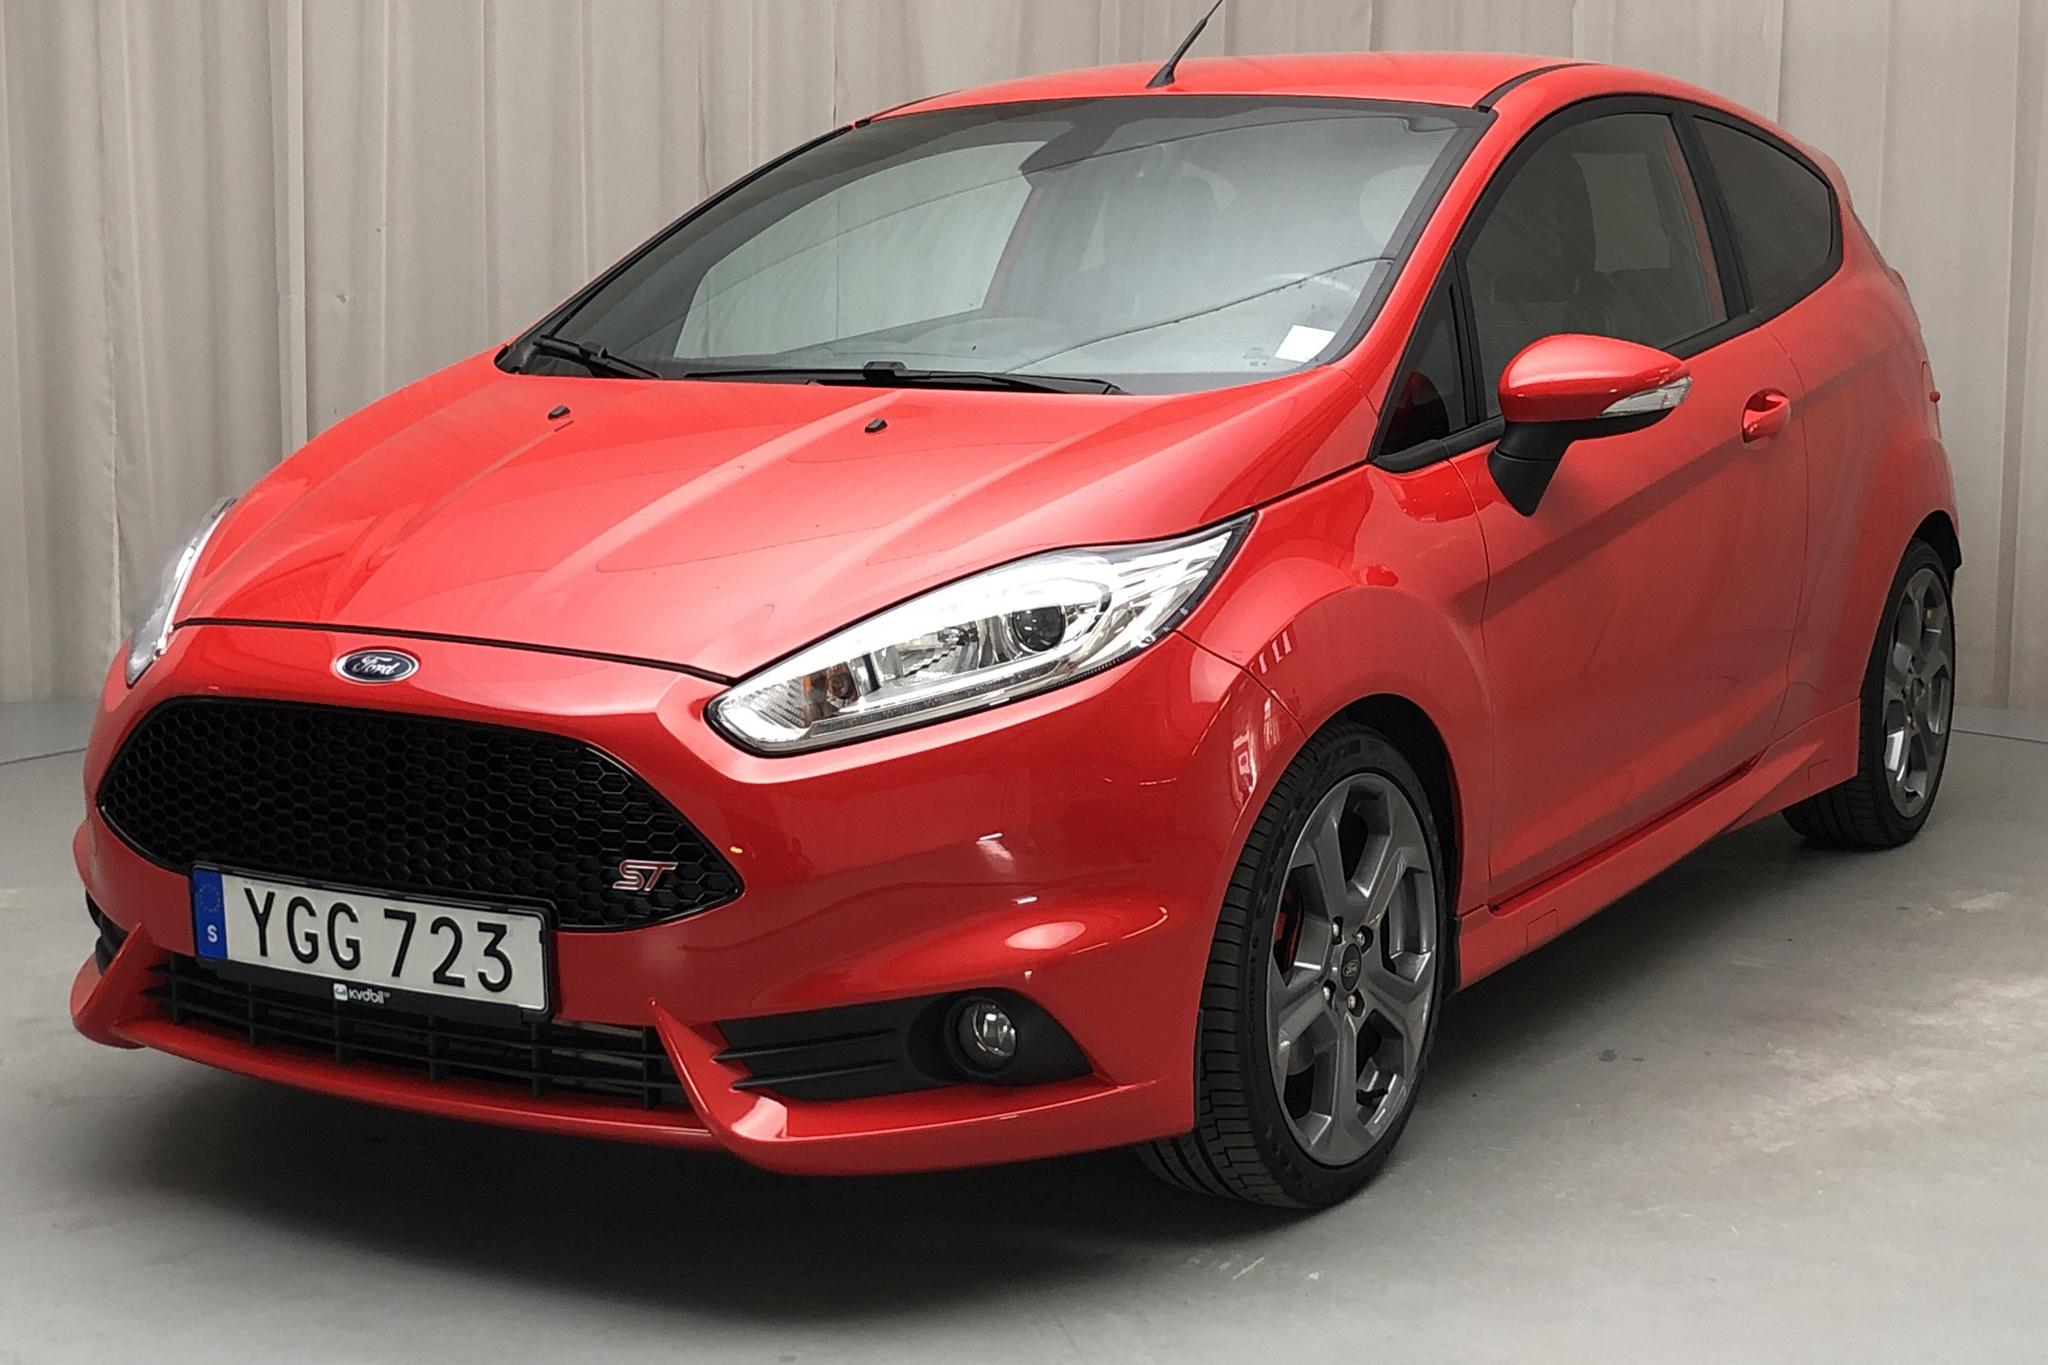 Ford Fiesta 1.6 ST 3dr (182hk) - 51 490 km - Manual - red - 2017